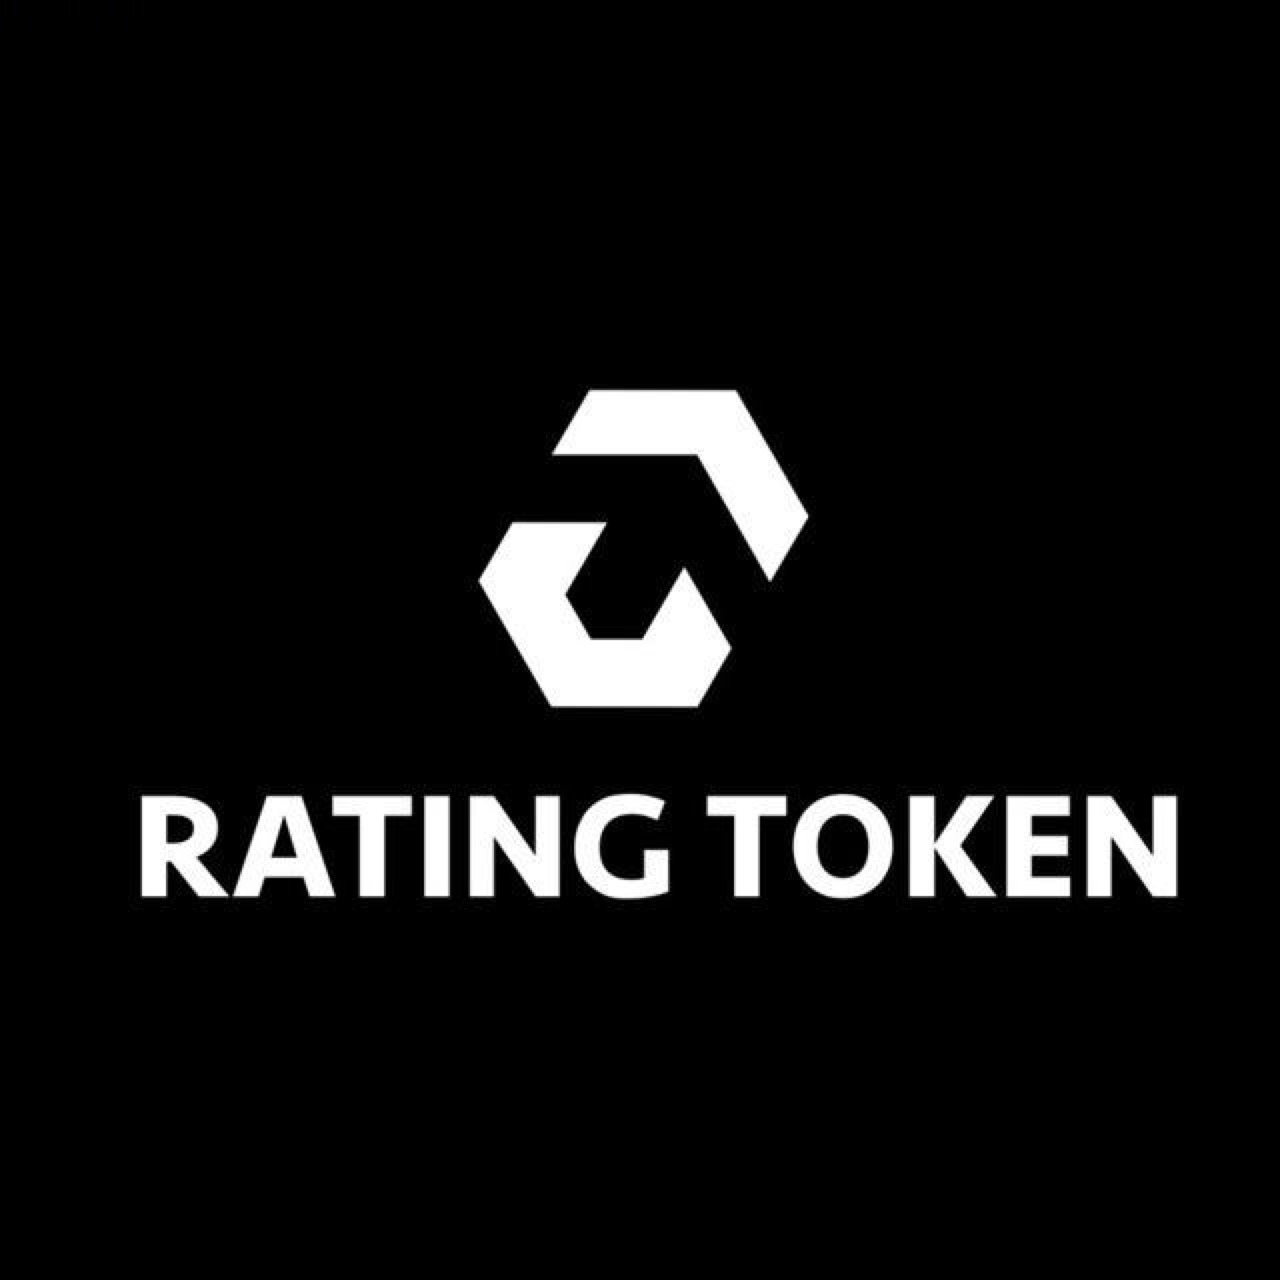 RatingToken